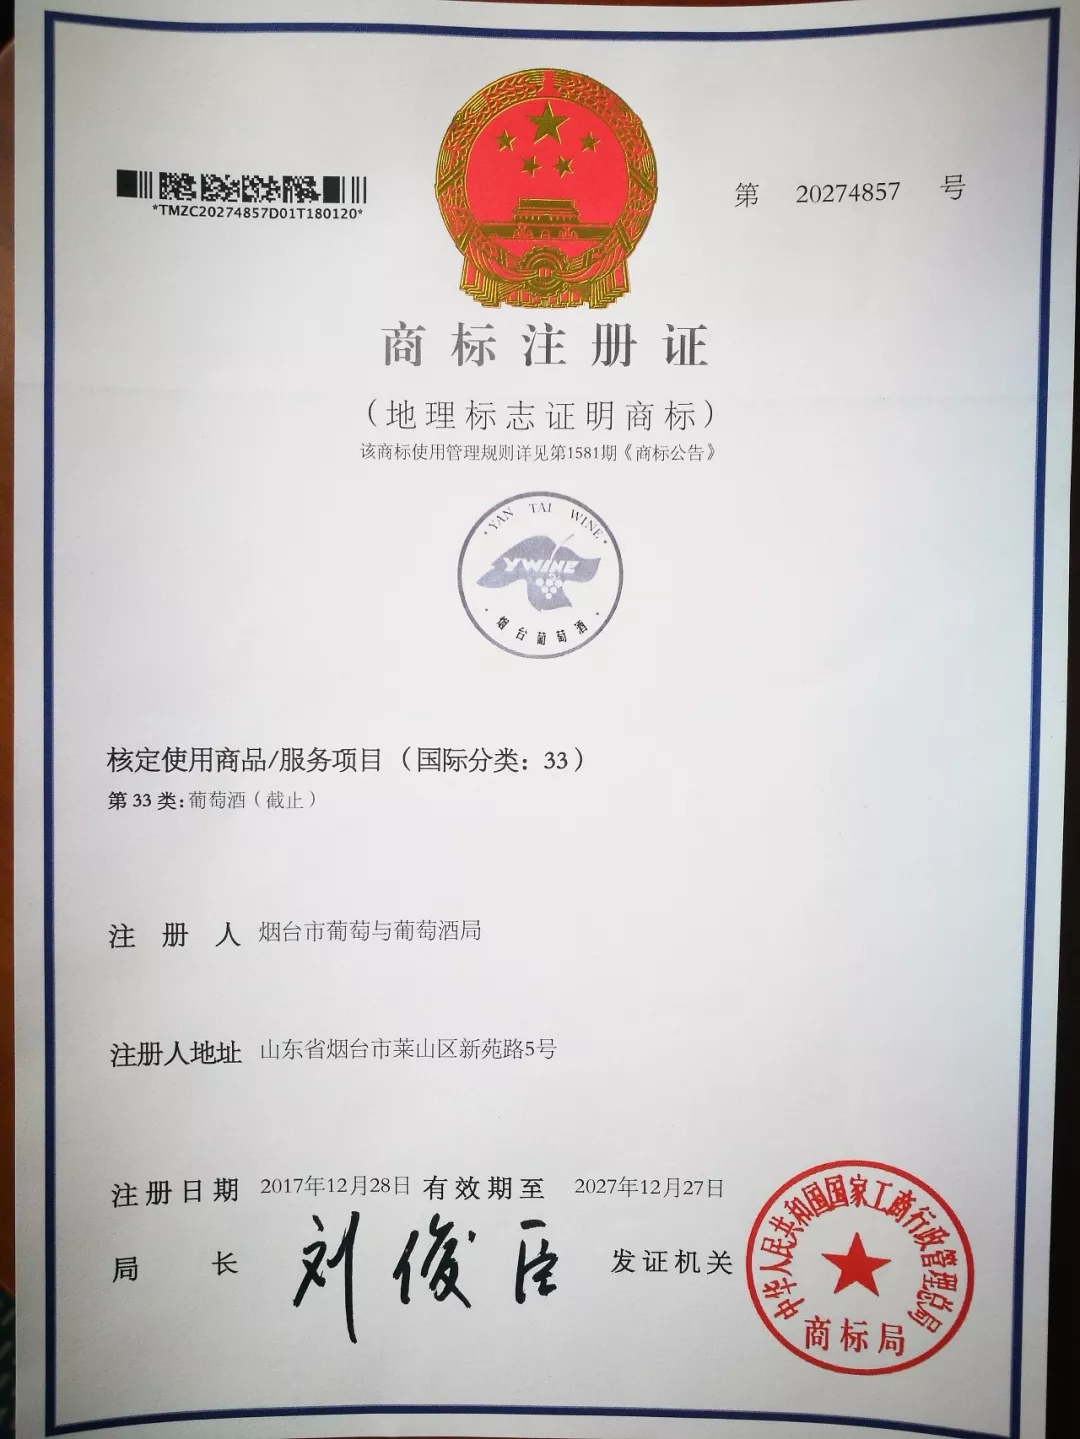 Yantai-produced wine gets trademark recognition